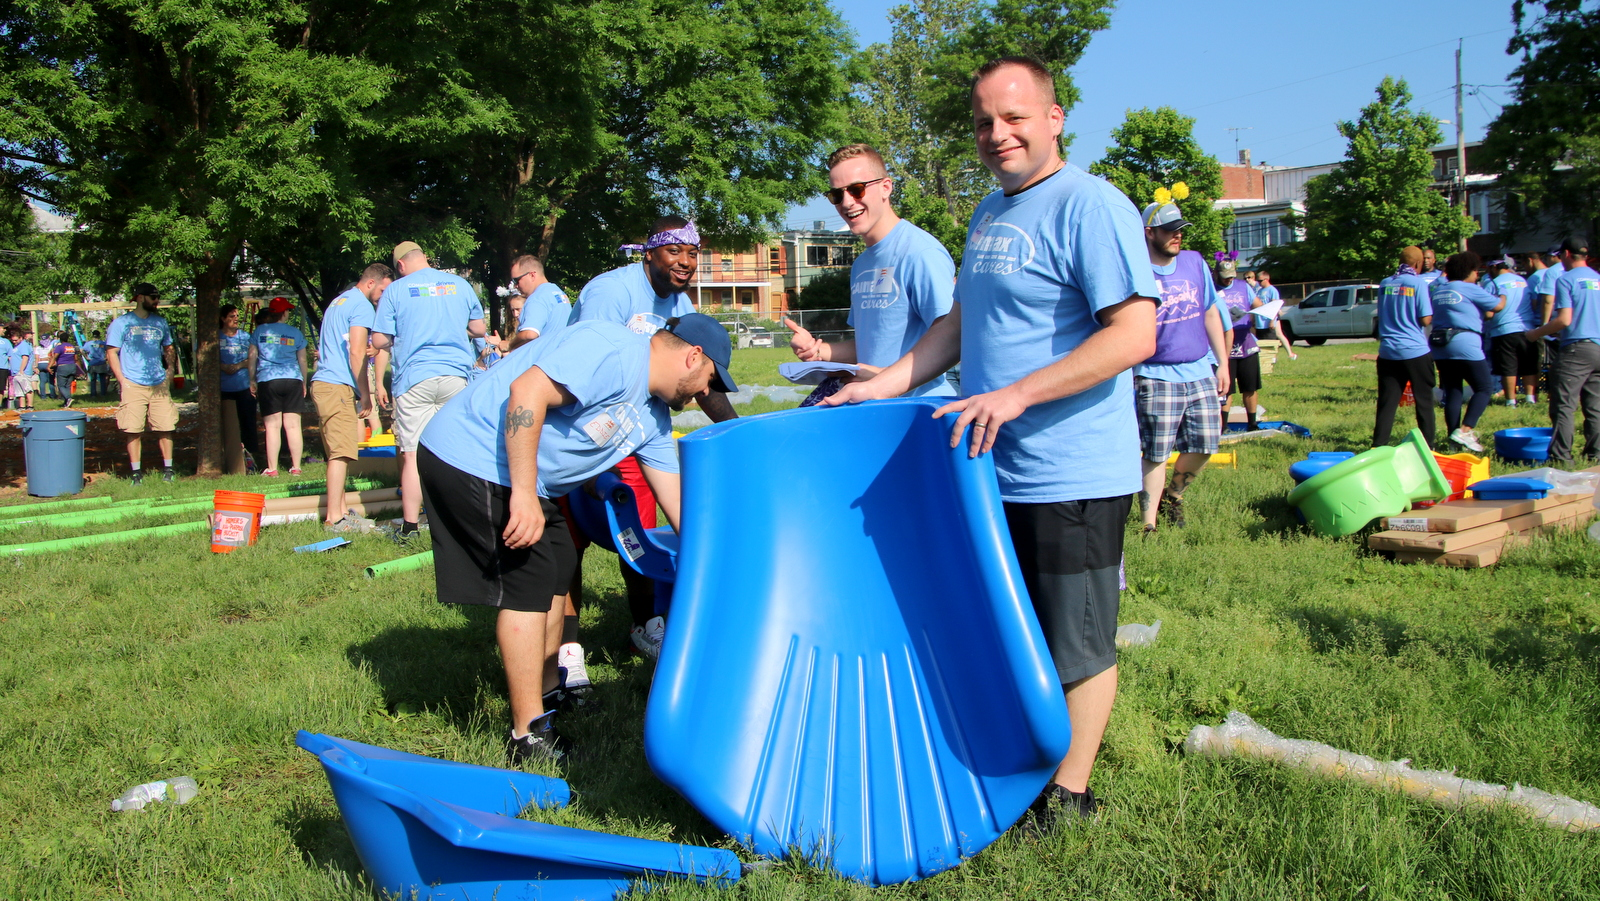 Volunteer partners from Carmax join community members to help build a new playground behind Barclay Elementary School. (Fern Shen)